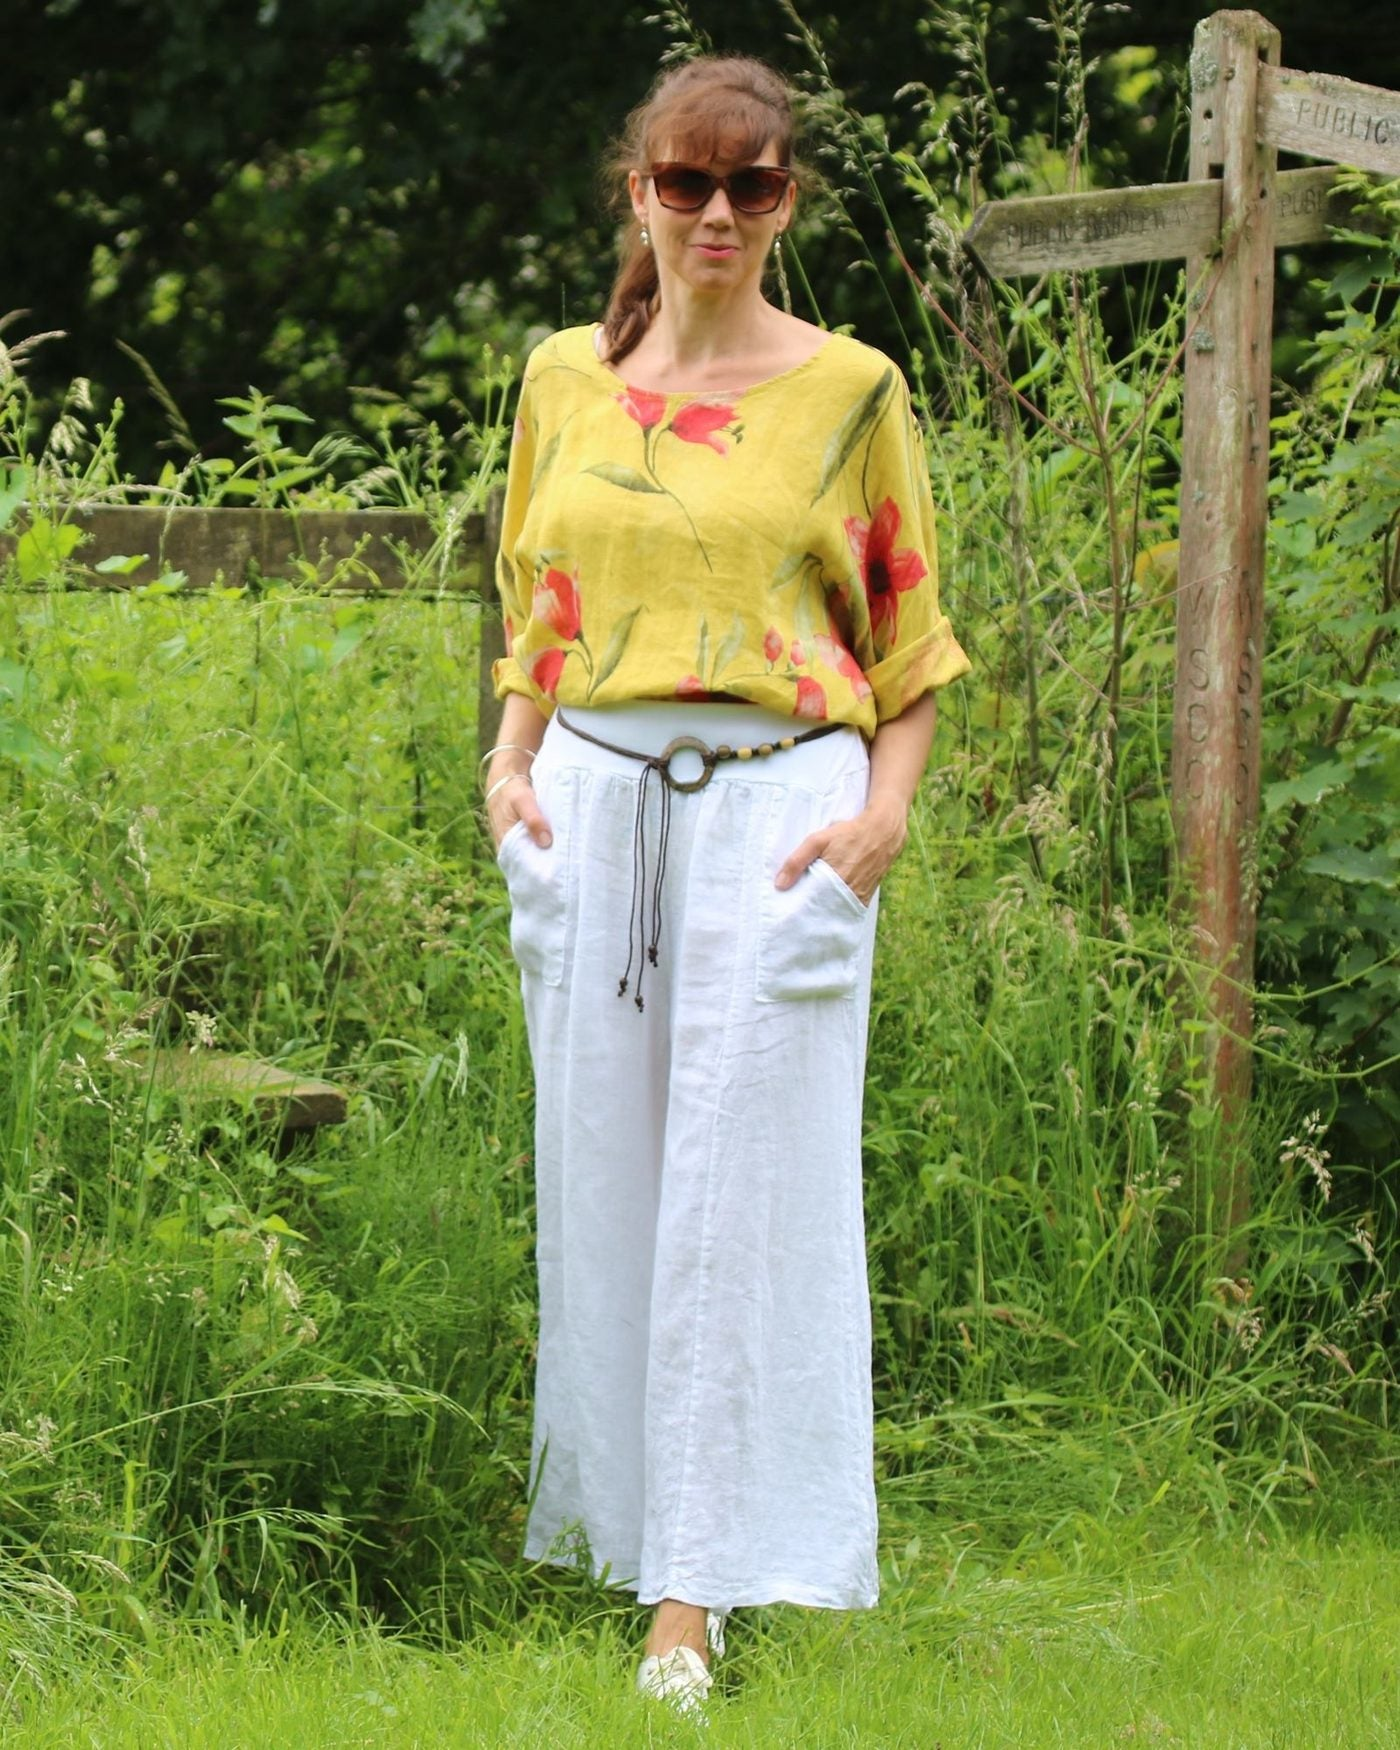 Cadenza Italy Linen Flared Trousers and Belt - White